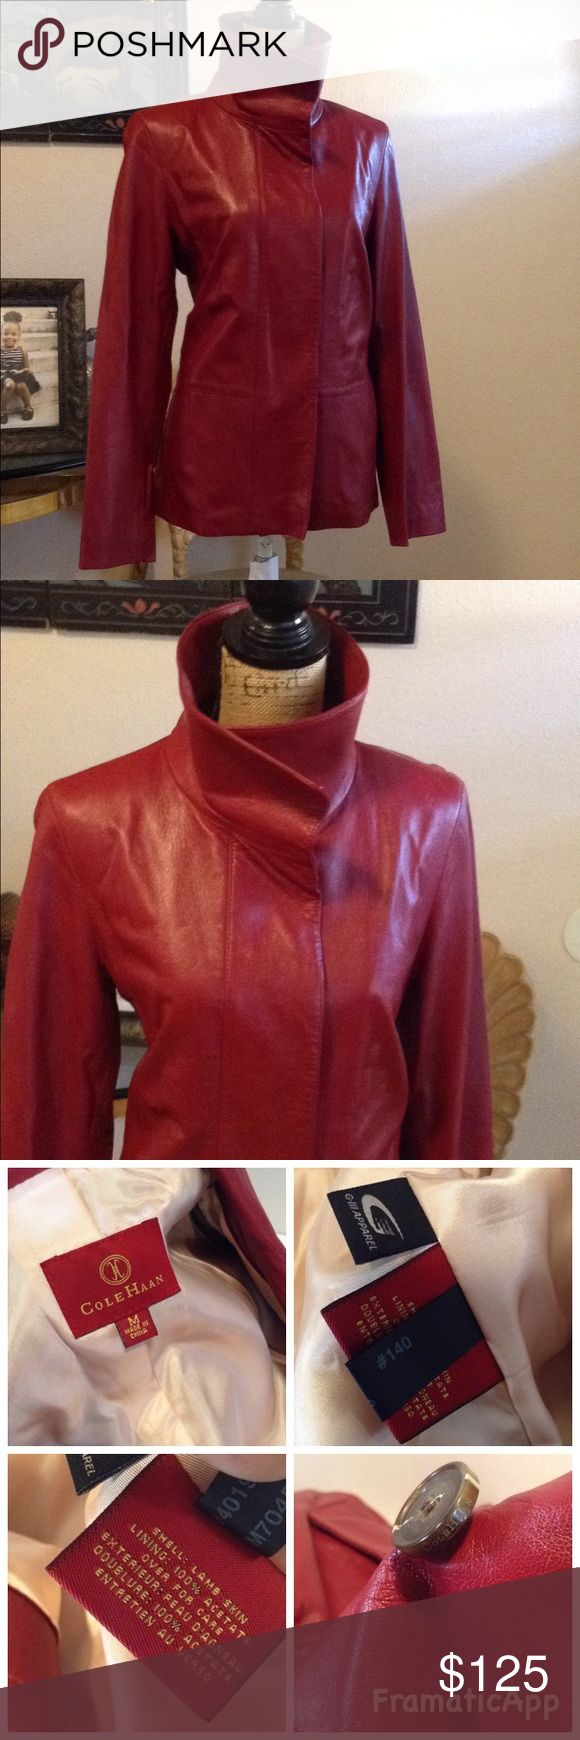 Cole Haan Red Lambskin Leather  Jacket Cole Haan Red Lambskin Leather  Jacket  Sz  Med . Has button front closure two side pockets  and one interior pocket. Gently worn a few time in great condition. Cole Haan Jackets & Coats Blazers